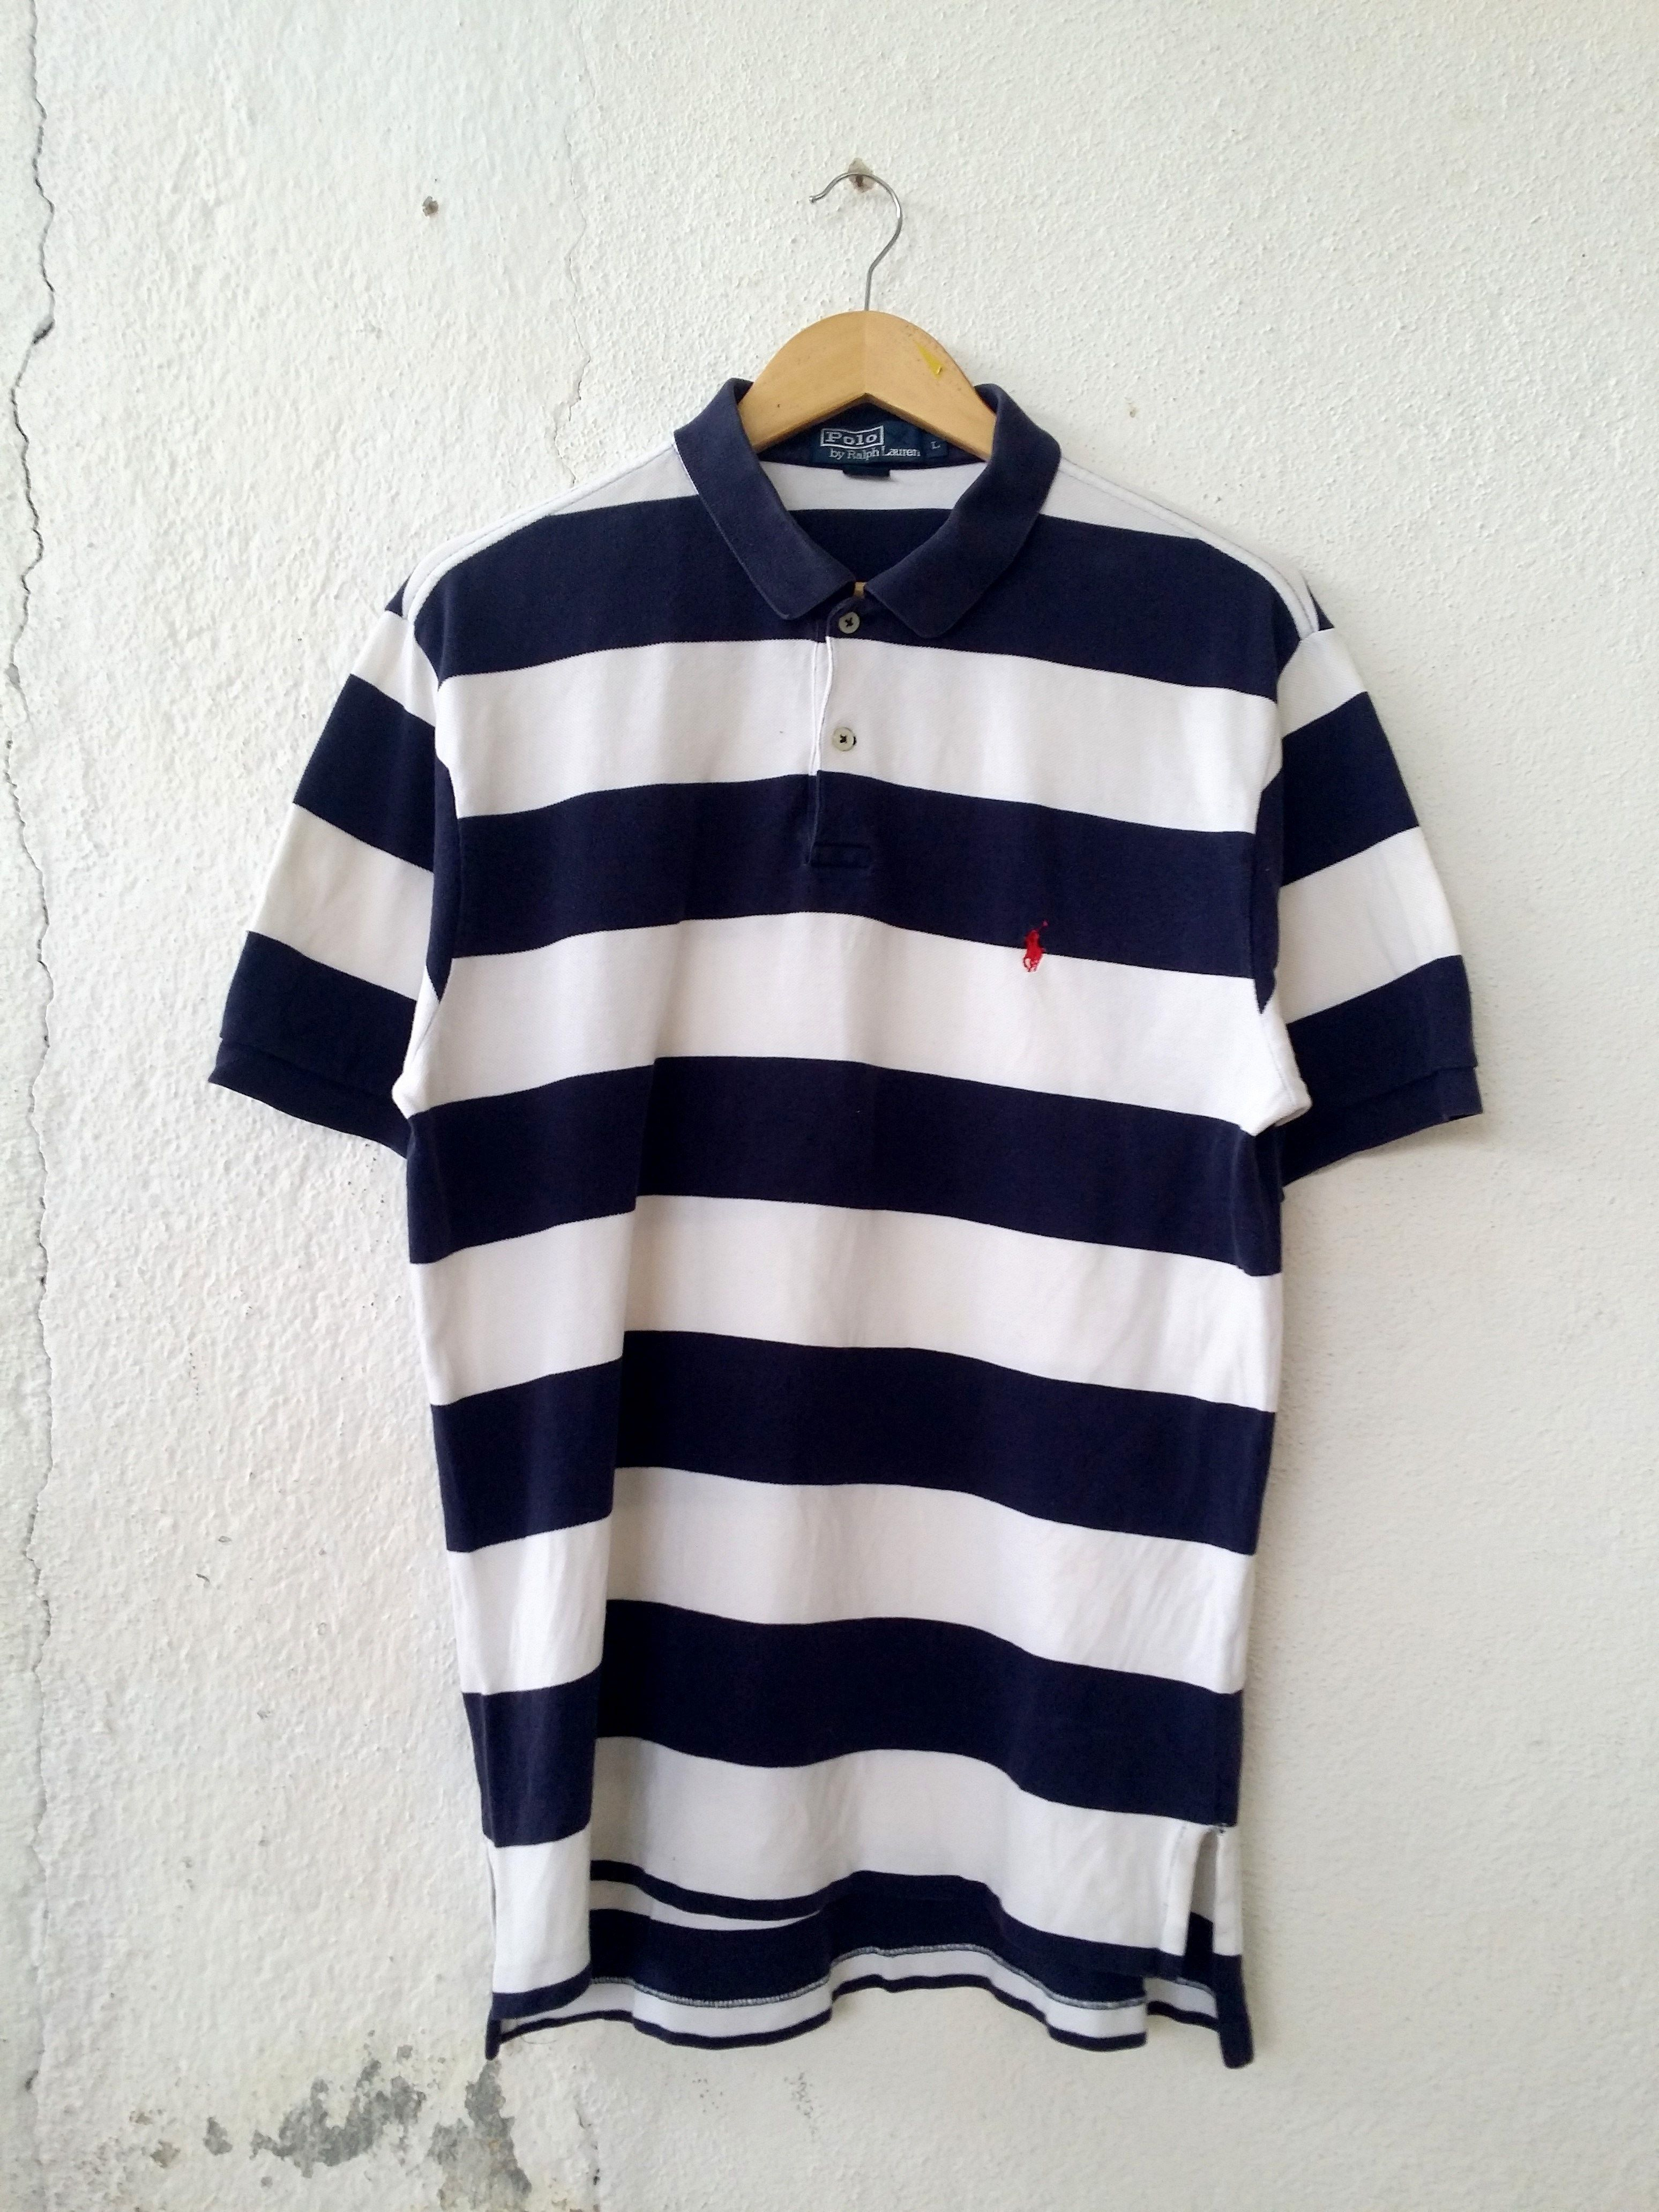 dfe5f2be1 Ralph Lauren Polo Shirt Stripe Small Pony Embroidered Size L ...